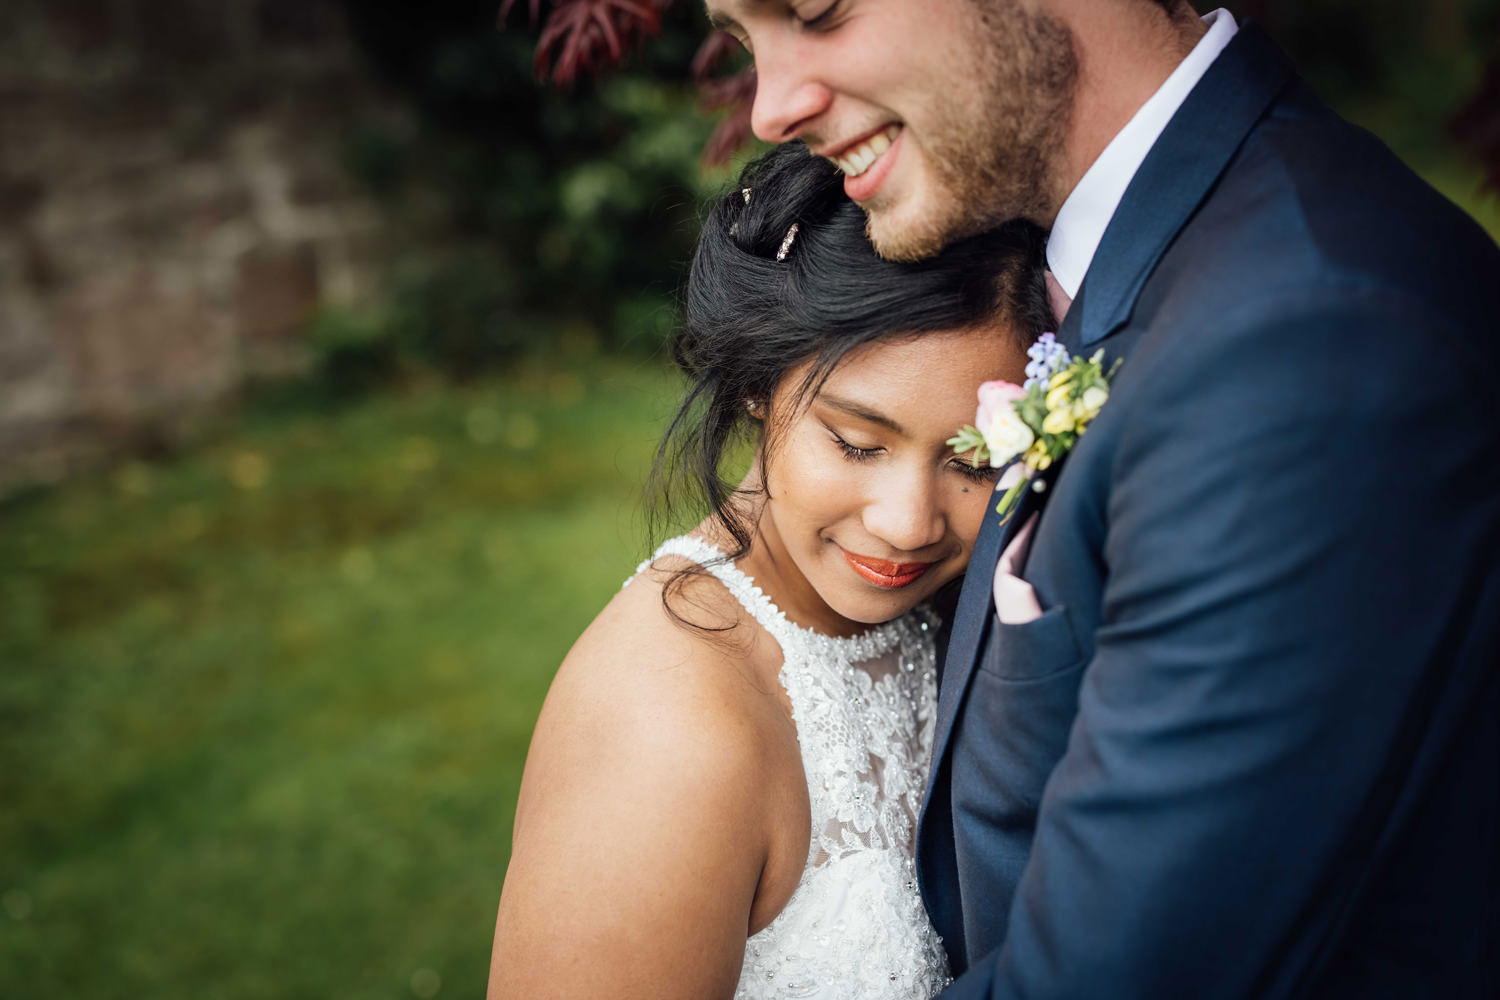 photograph of a wedding couple in a romantic way